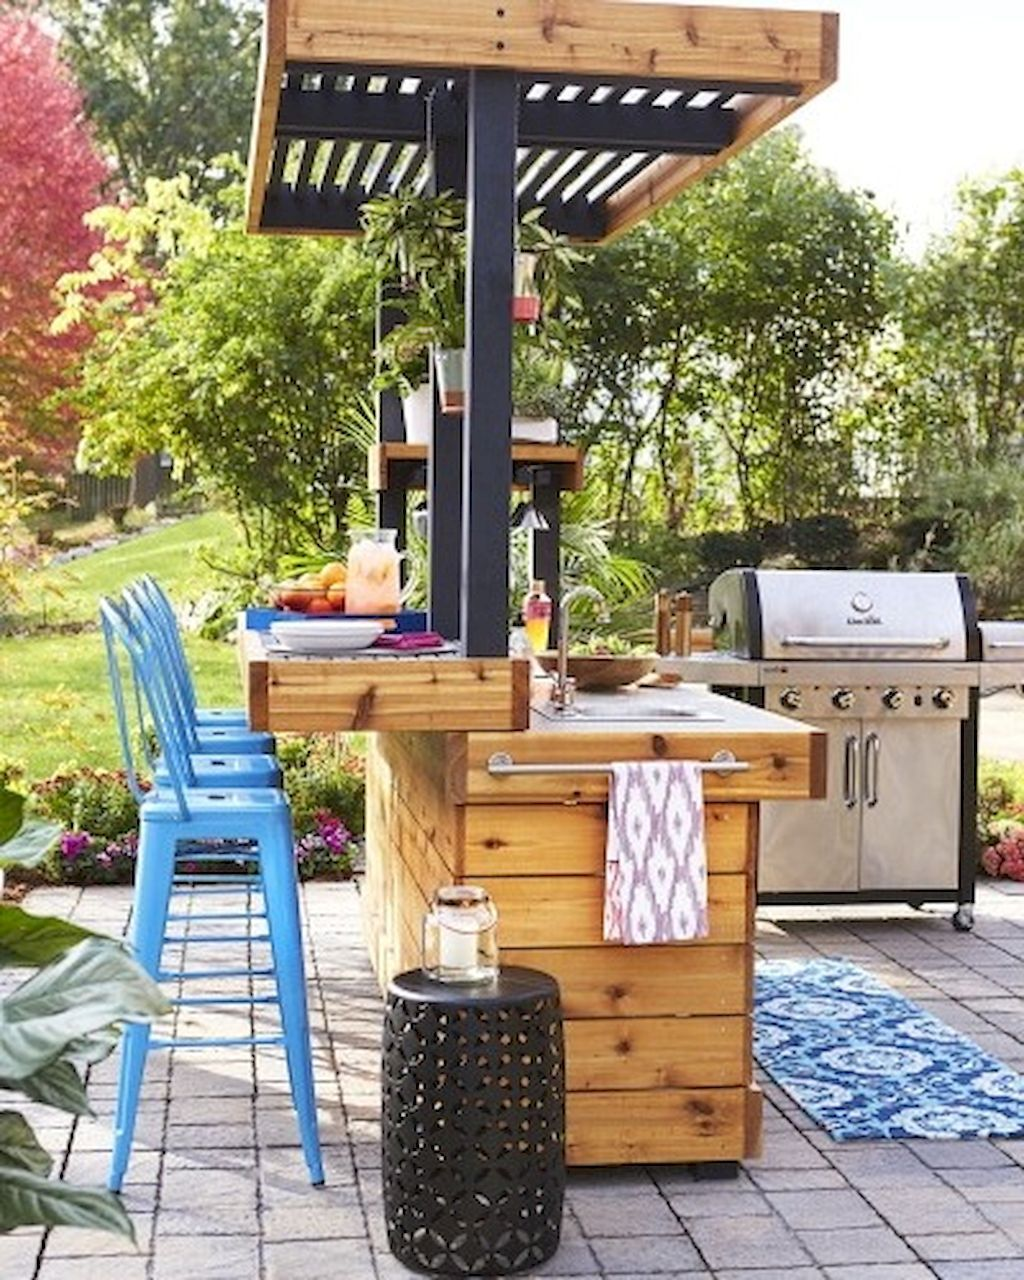 47 Incredible Outdoor Kitchen Design Ideas On Backyard